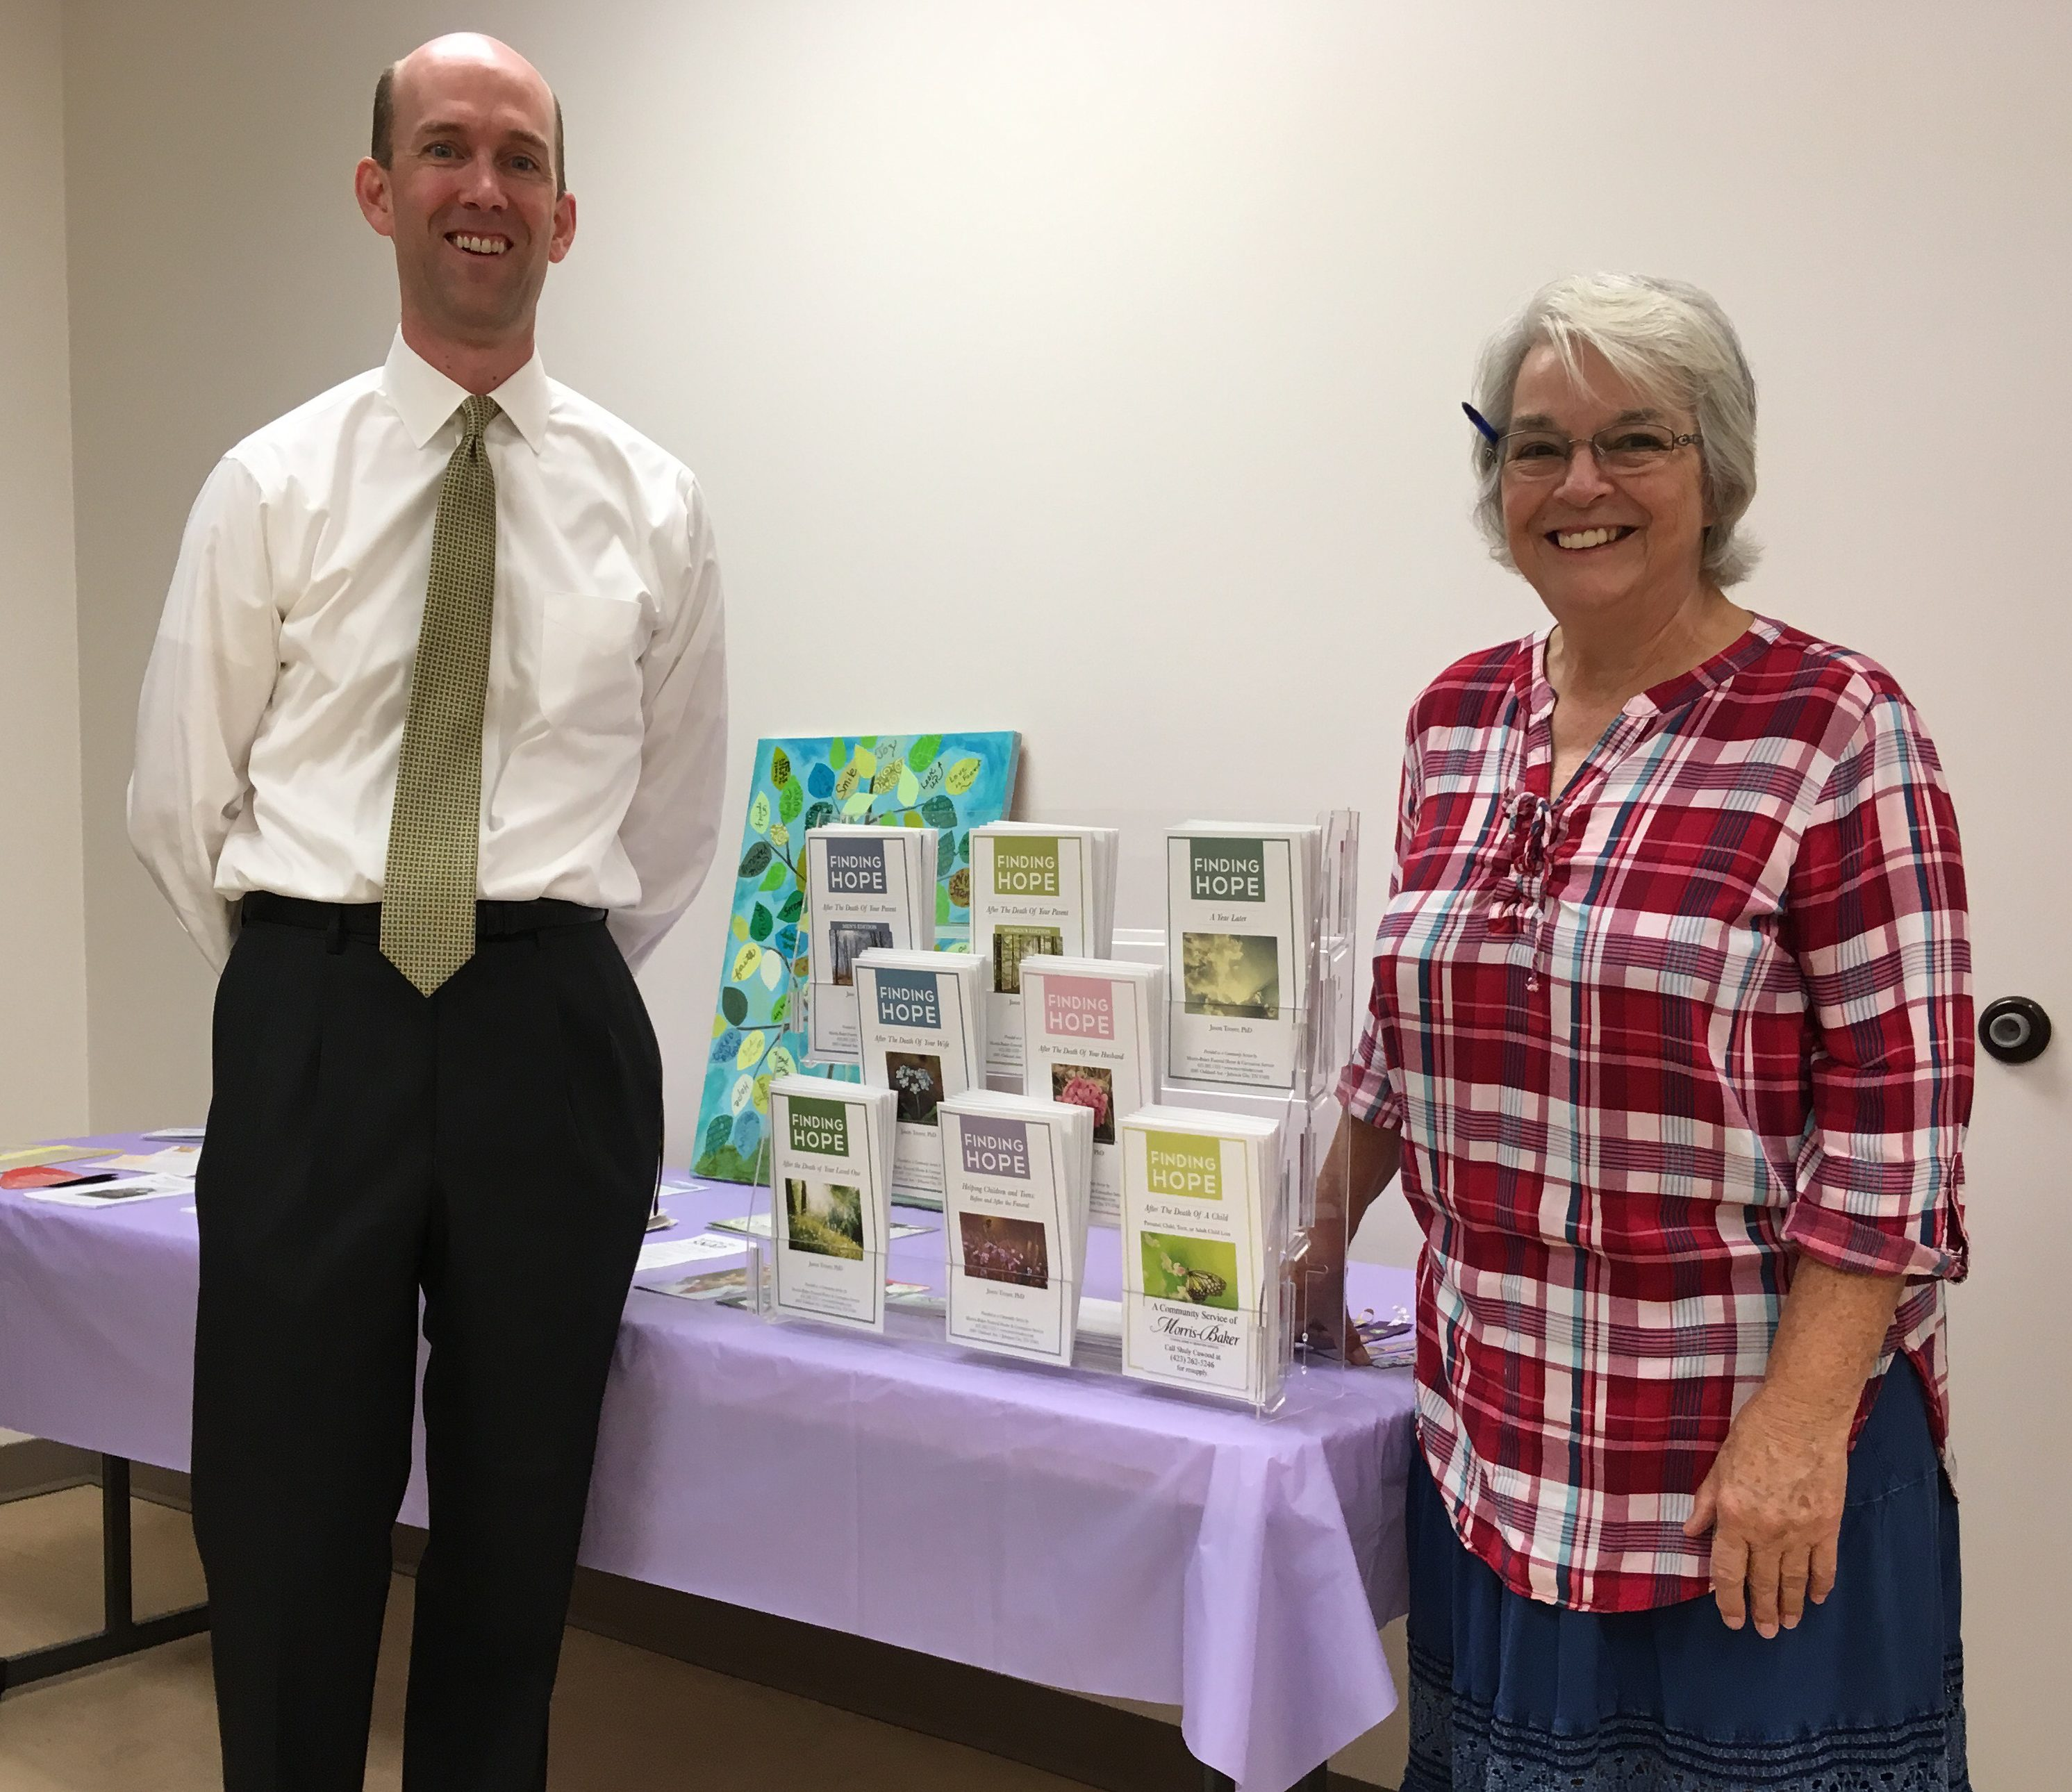 More Grief Support Resources Now Available at Johnson City Senior